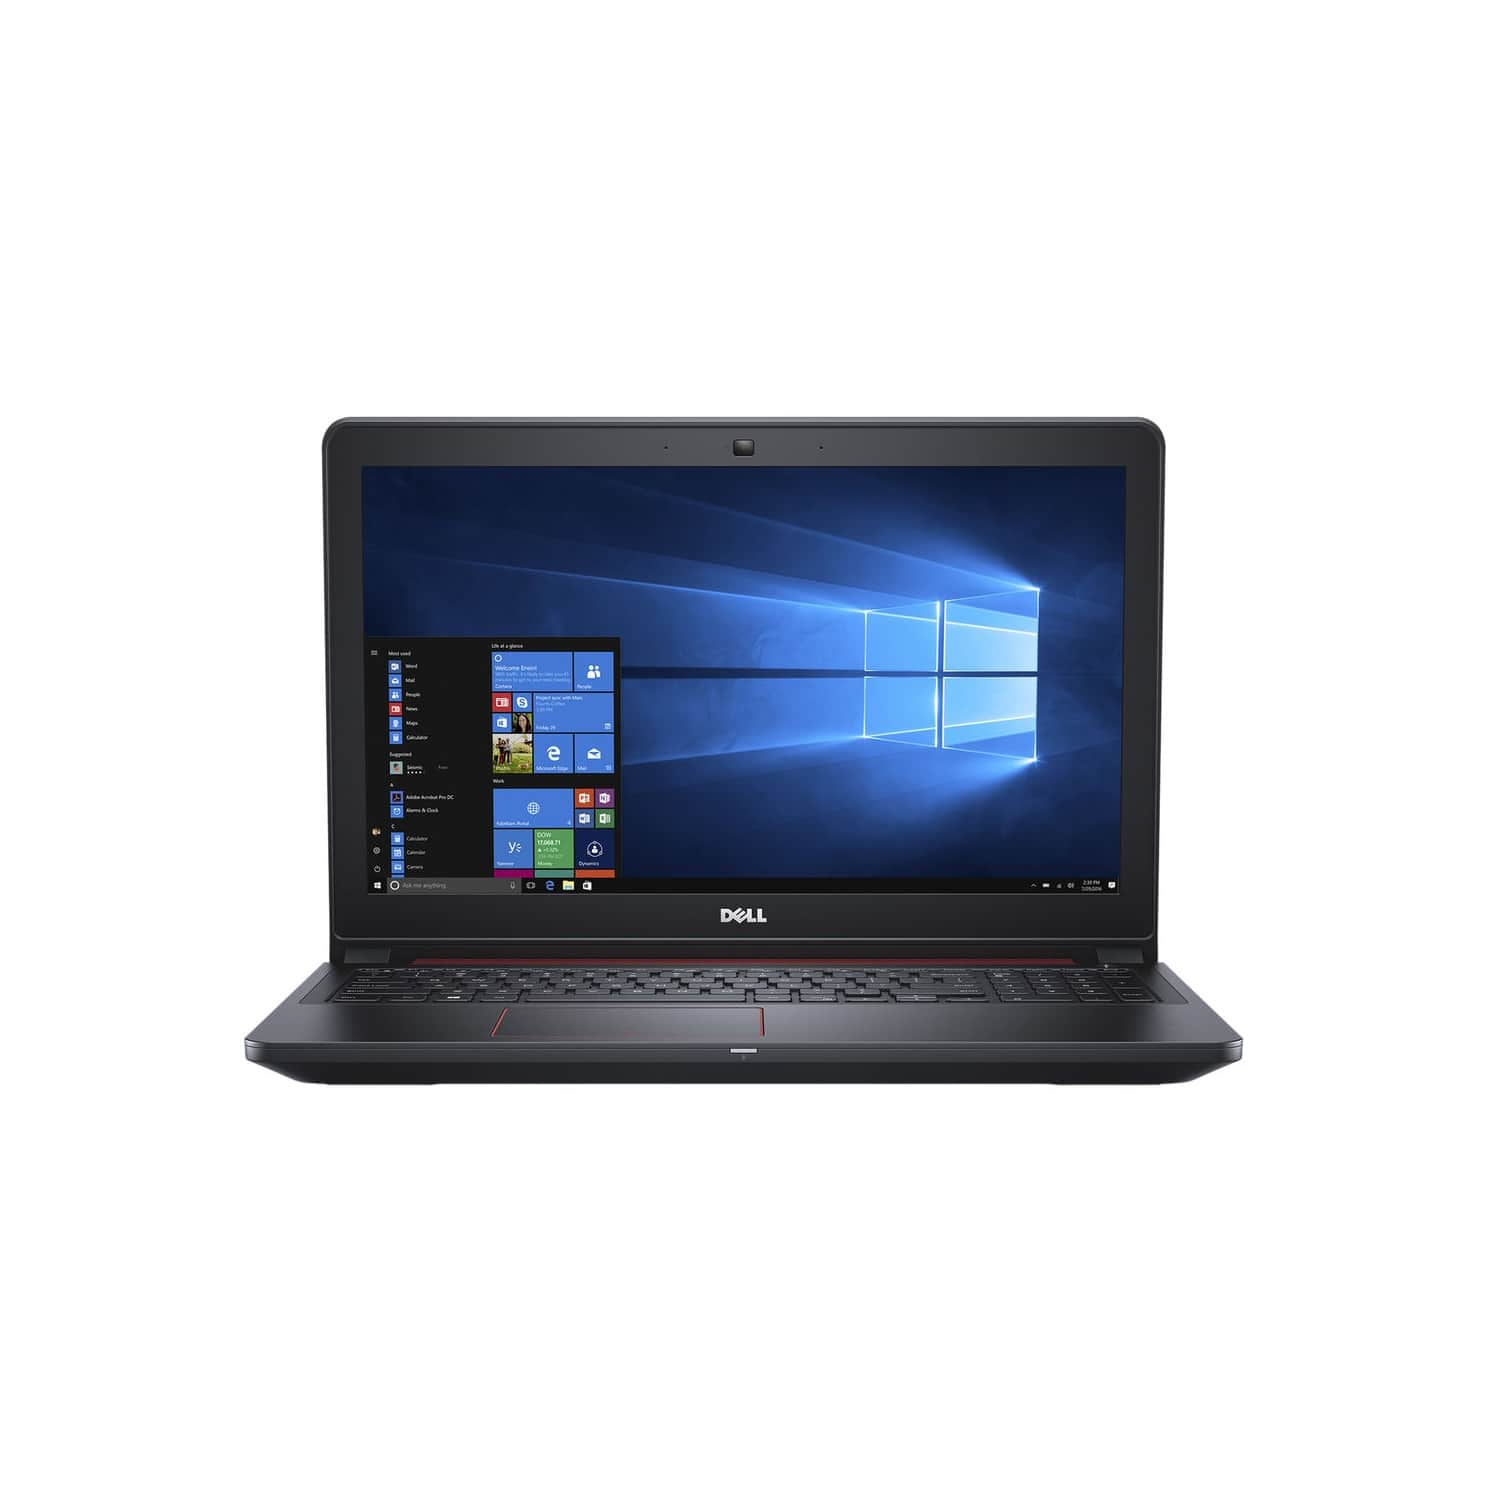 Dell Inspiron 15-5577 Notebook with Intel i7-7700HQ, 16GB 512GB SSD GTX 1050 $850